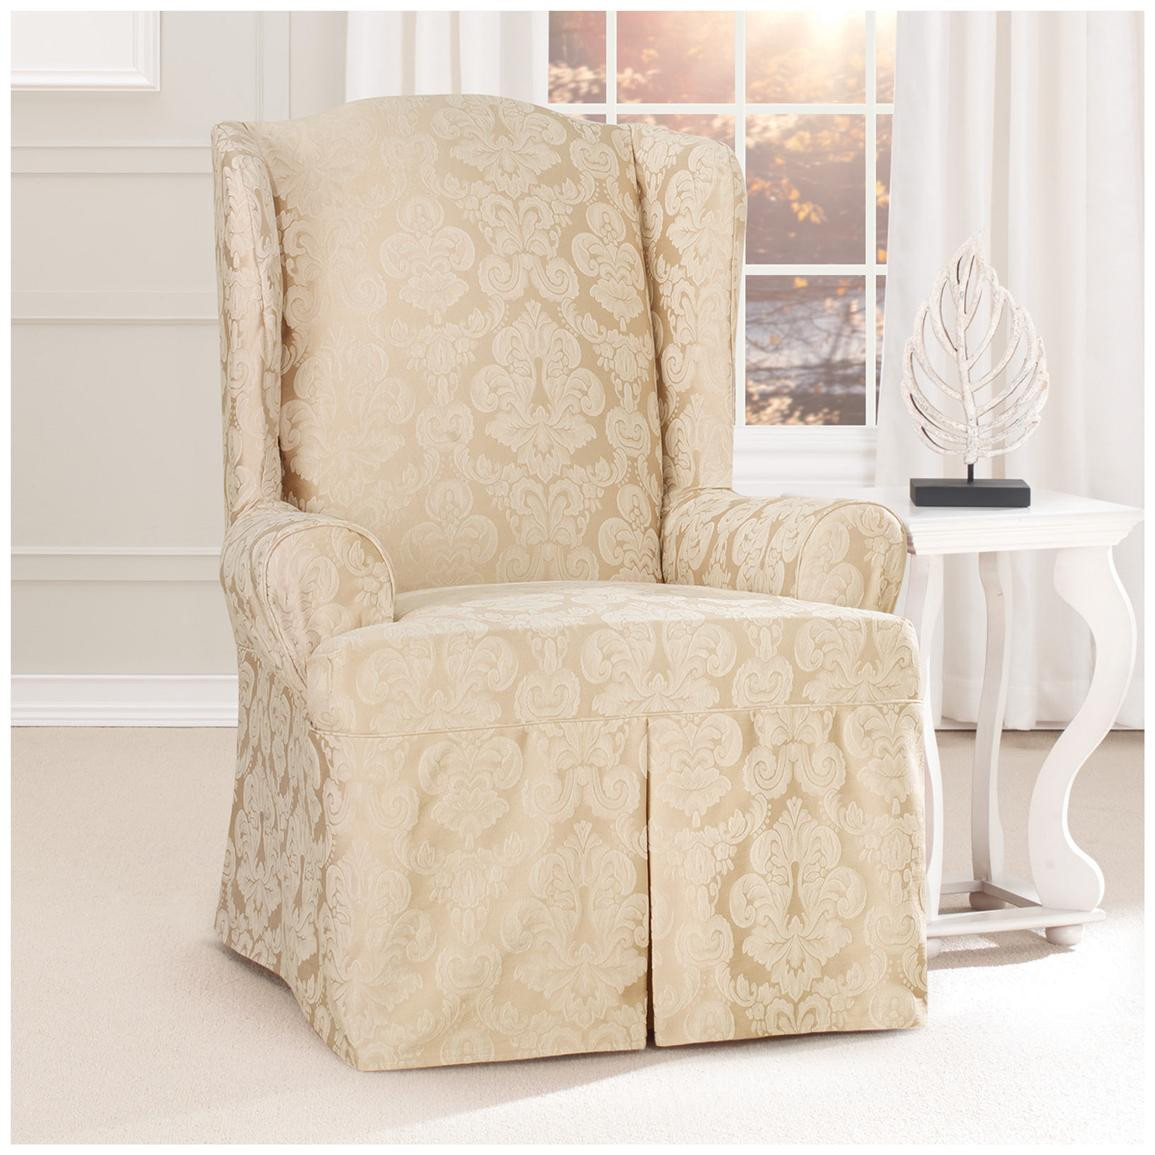 Best ideas about Sure Fit Chair Covers . Save or Pin Sure Fit Middleton Wing Chair Slipcover Now.